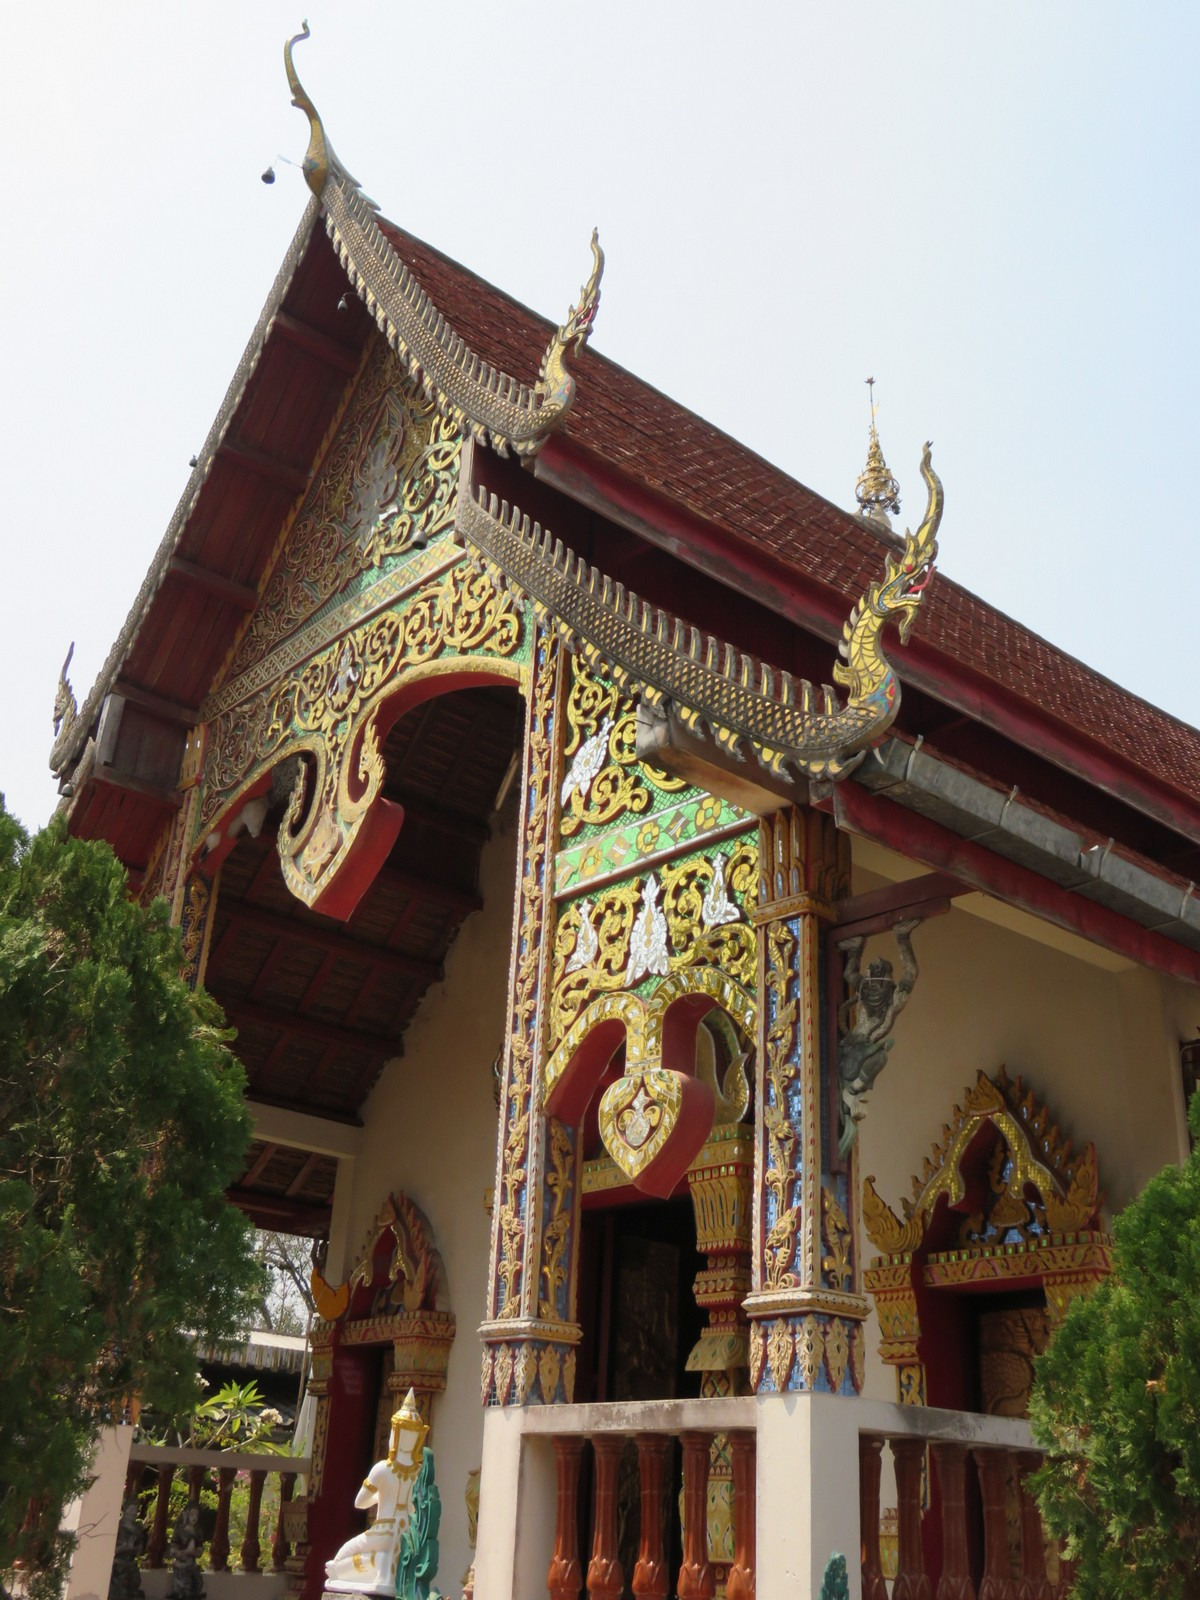 Even the small temples in Pai are incredibly ornate